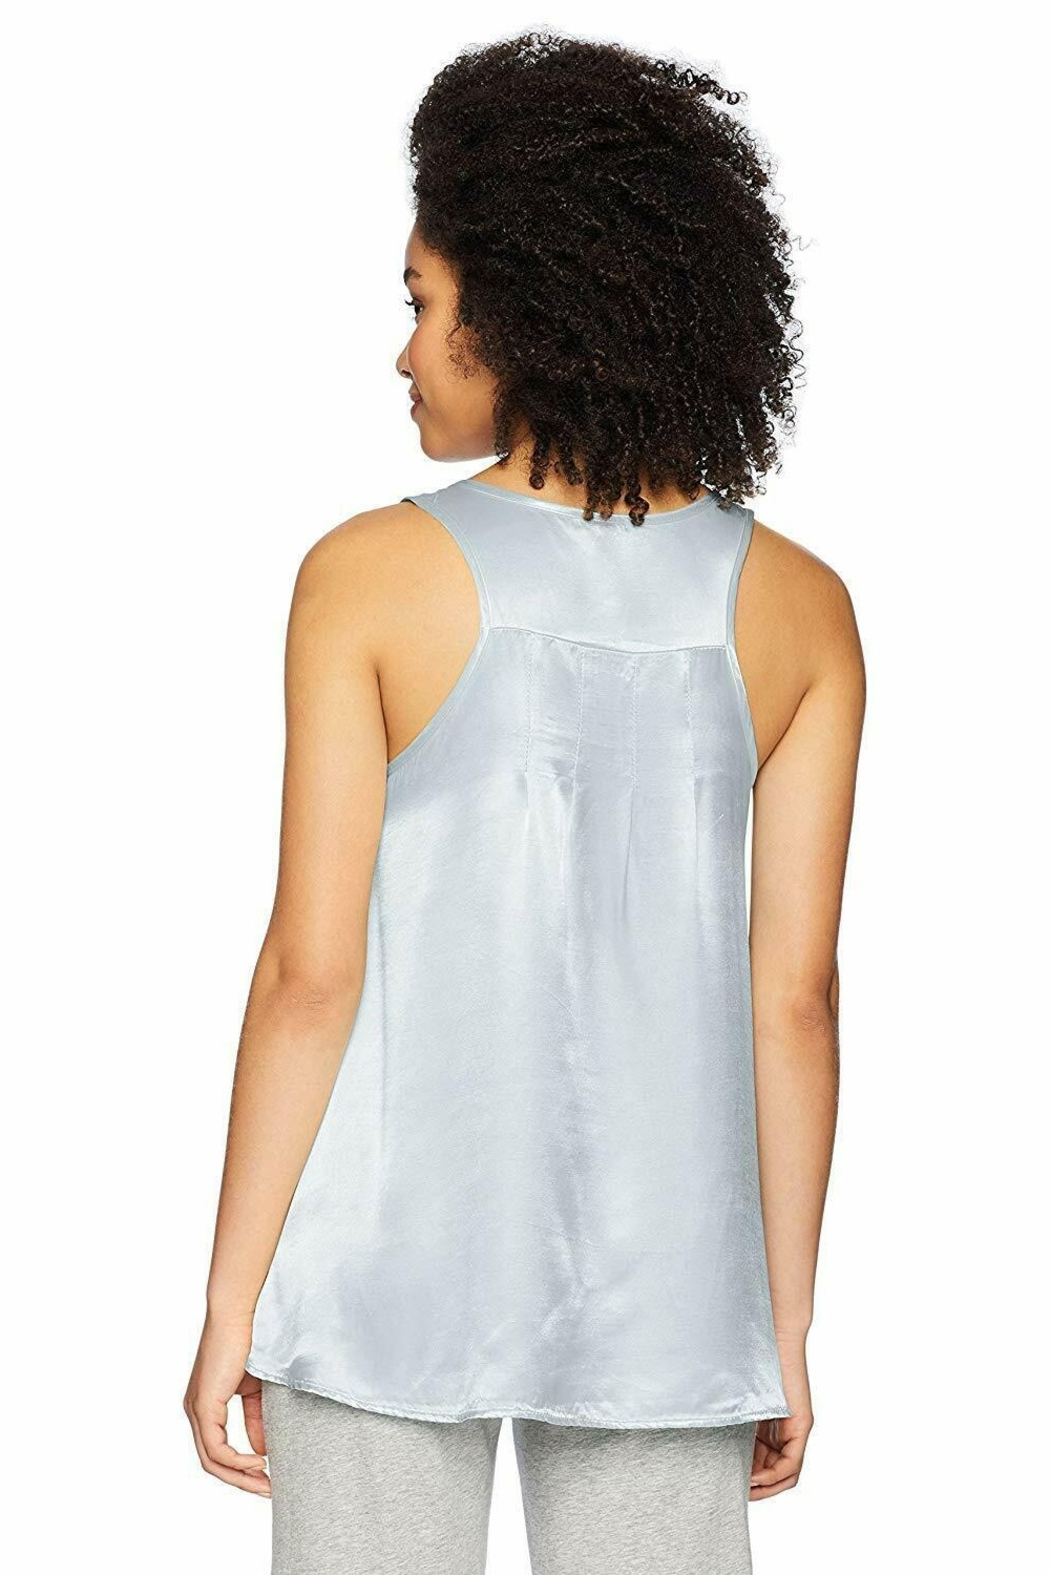 PJHARLOW Satin Cami With Pleated Back - Front Full Image